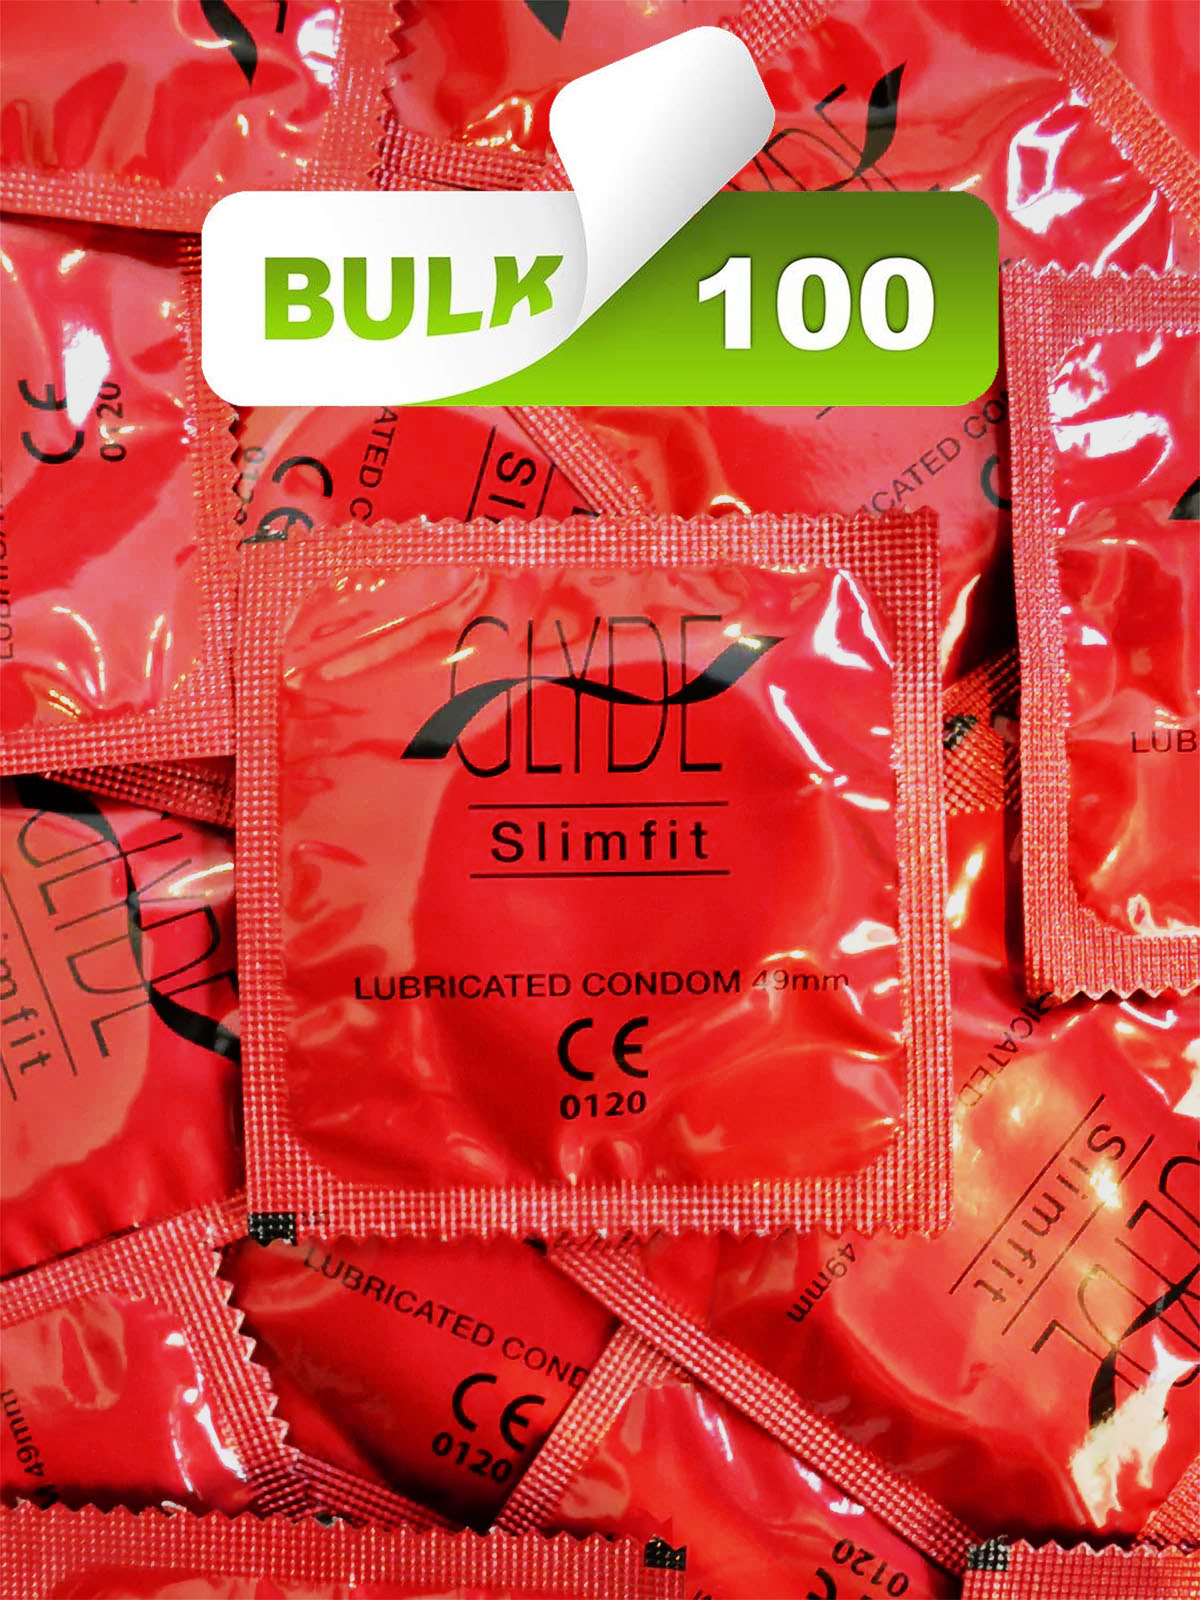 Glyde Slim Fit 49mm Condoms (100 Bulk)  - Buy Bulk Condoms Online